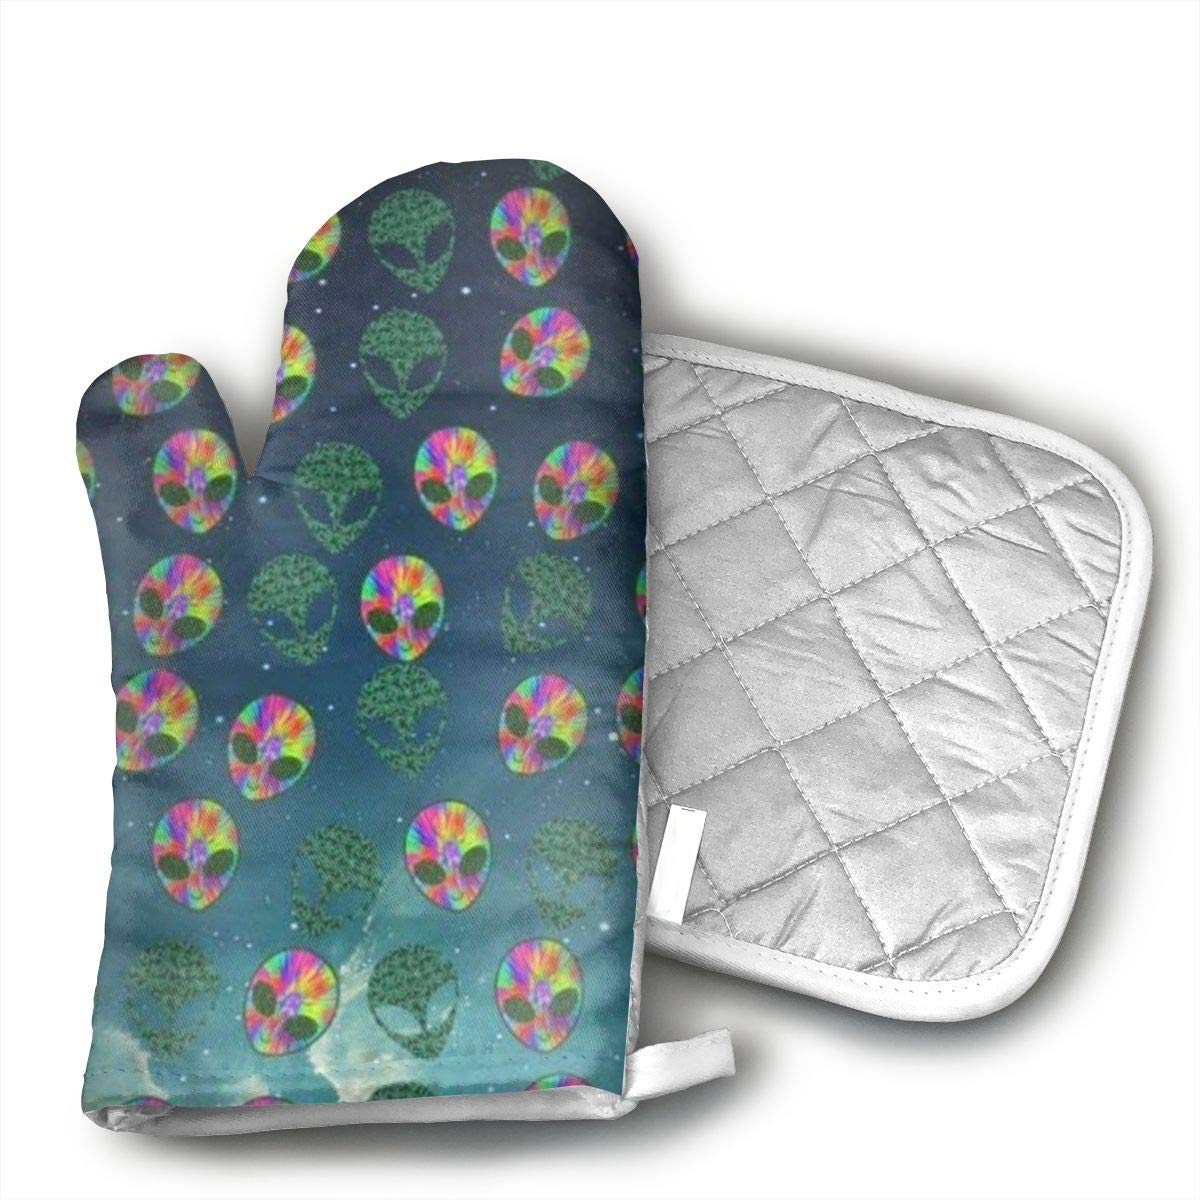 Wiqo9 Cool Tie Dye Weed Alien Head Leaf Oven Mitts and Pot Holders Kitchen Mitten Cooking Gloves,Cooking, Baking, BBQ.